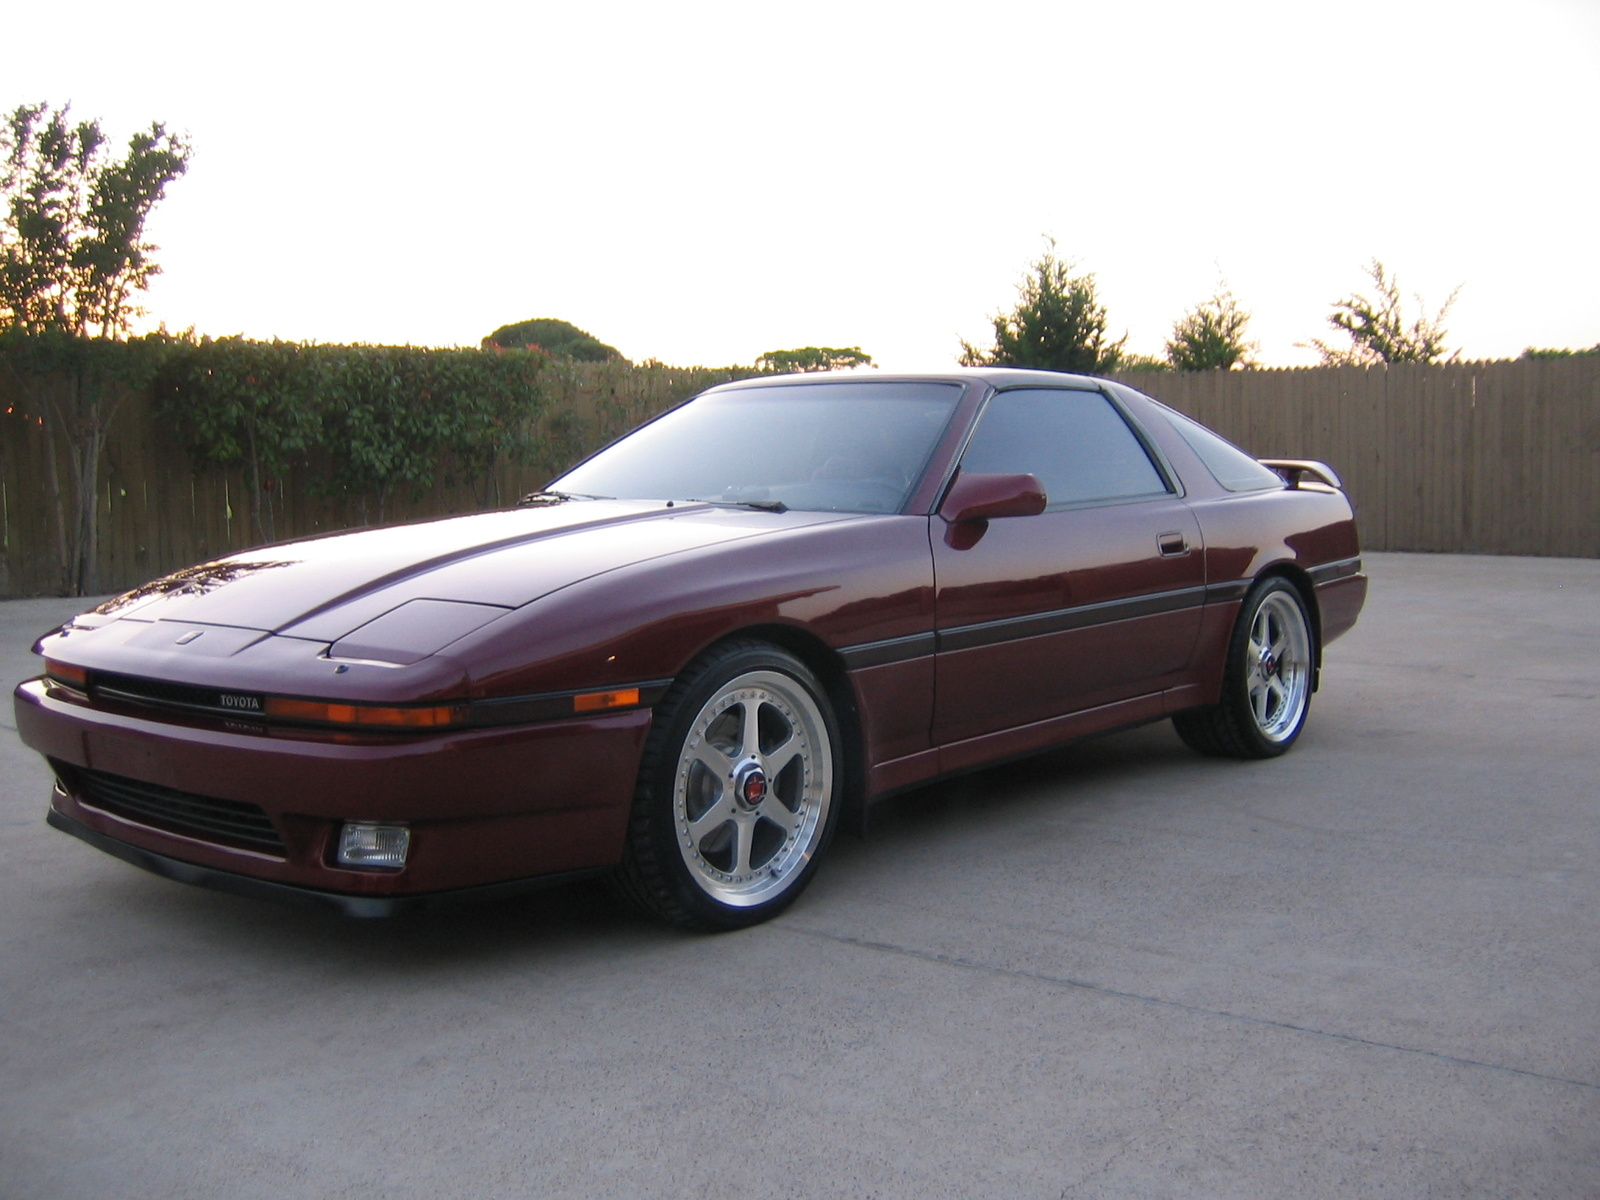 Toyota supra 1988 photo - 4